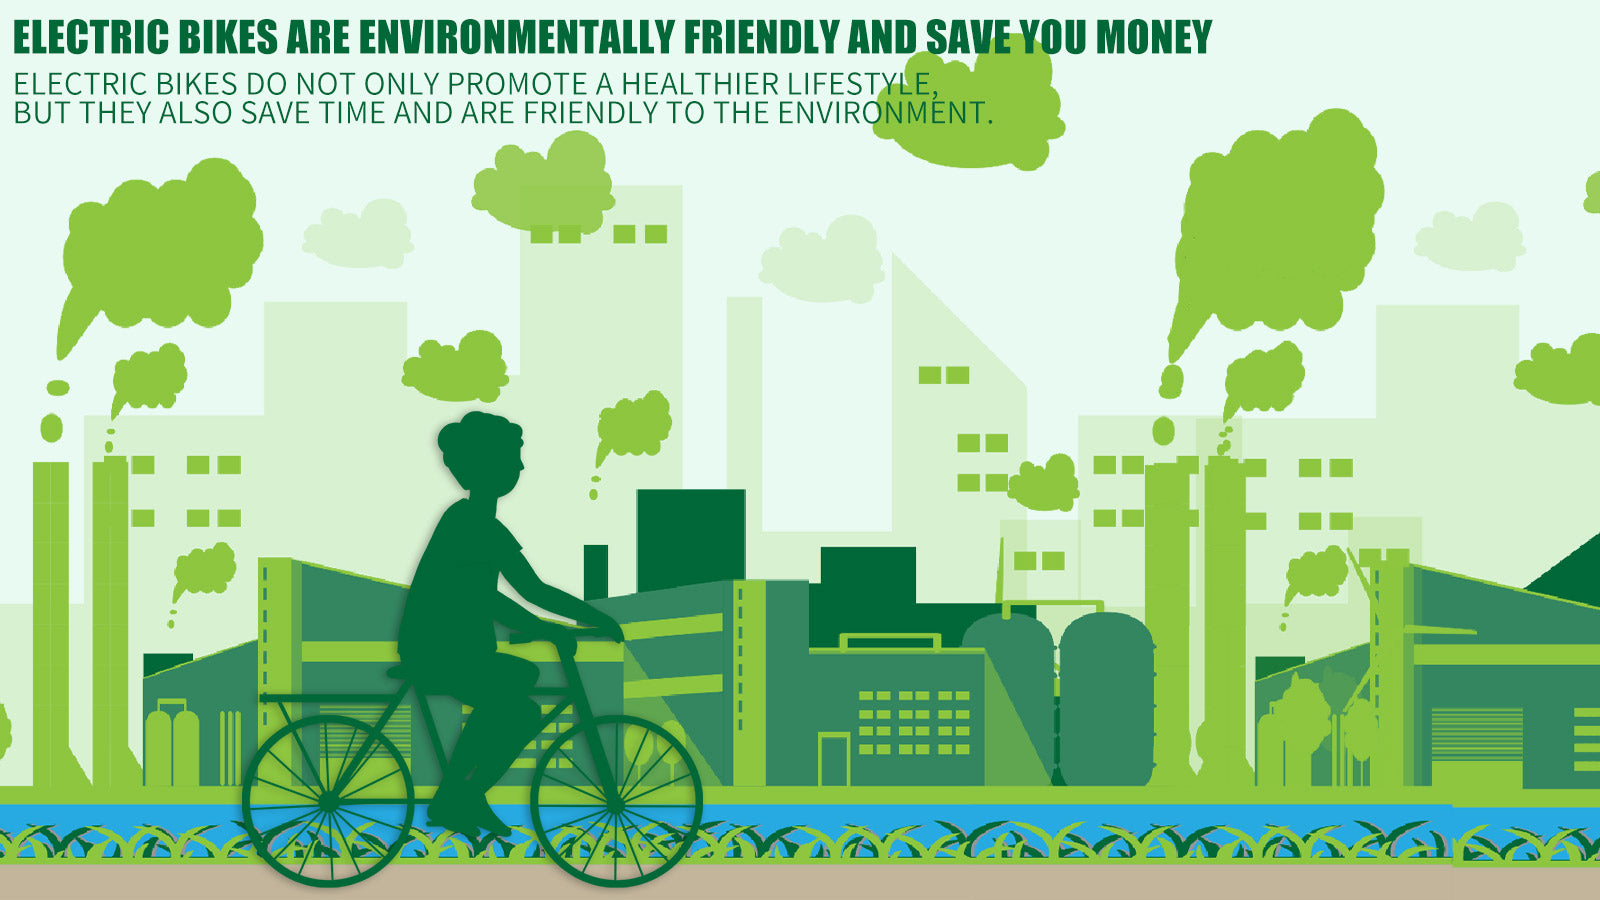 Electric bikes are environmentally friendly and save you money